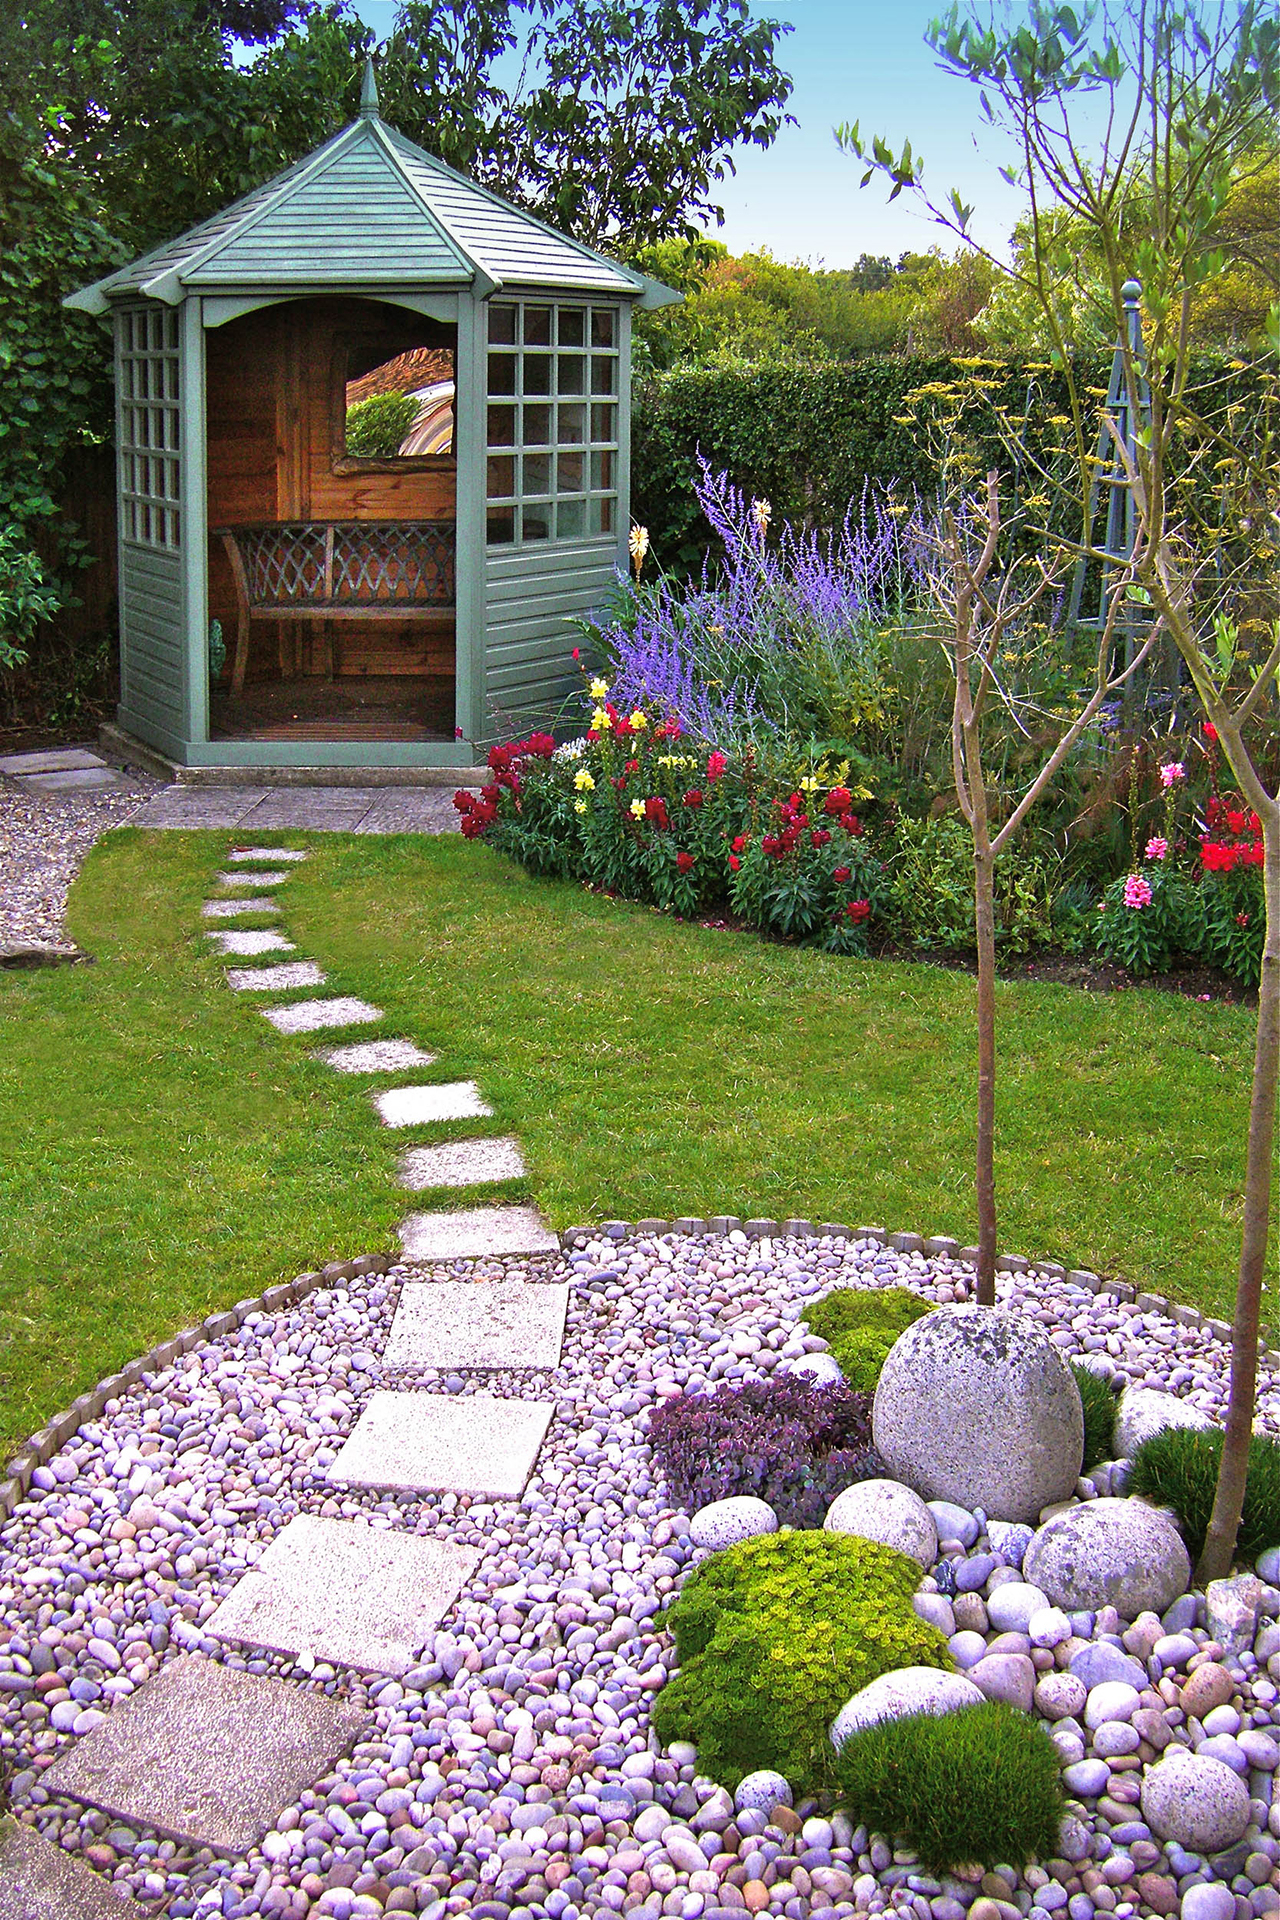 50 Best Backyard Landscaping Ideas And Designs In 2019 in Landscaping Backyards